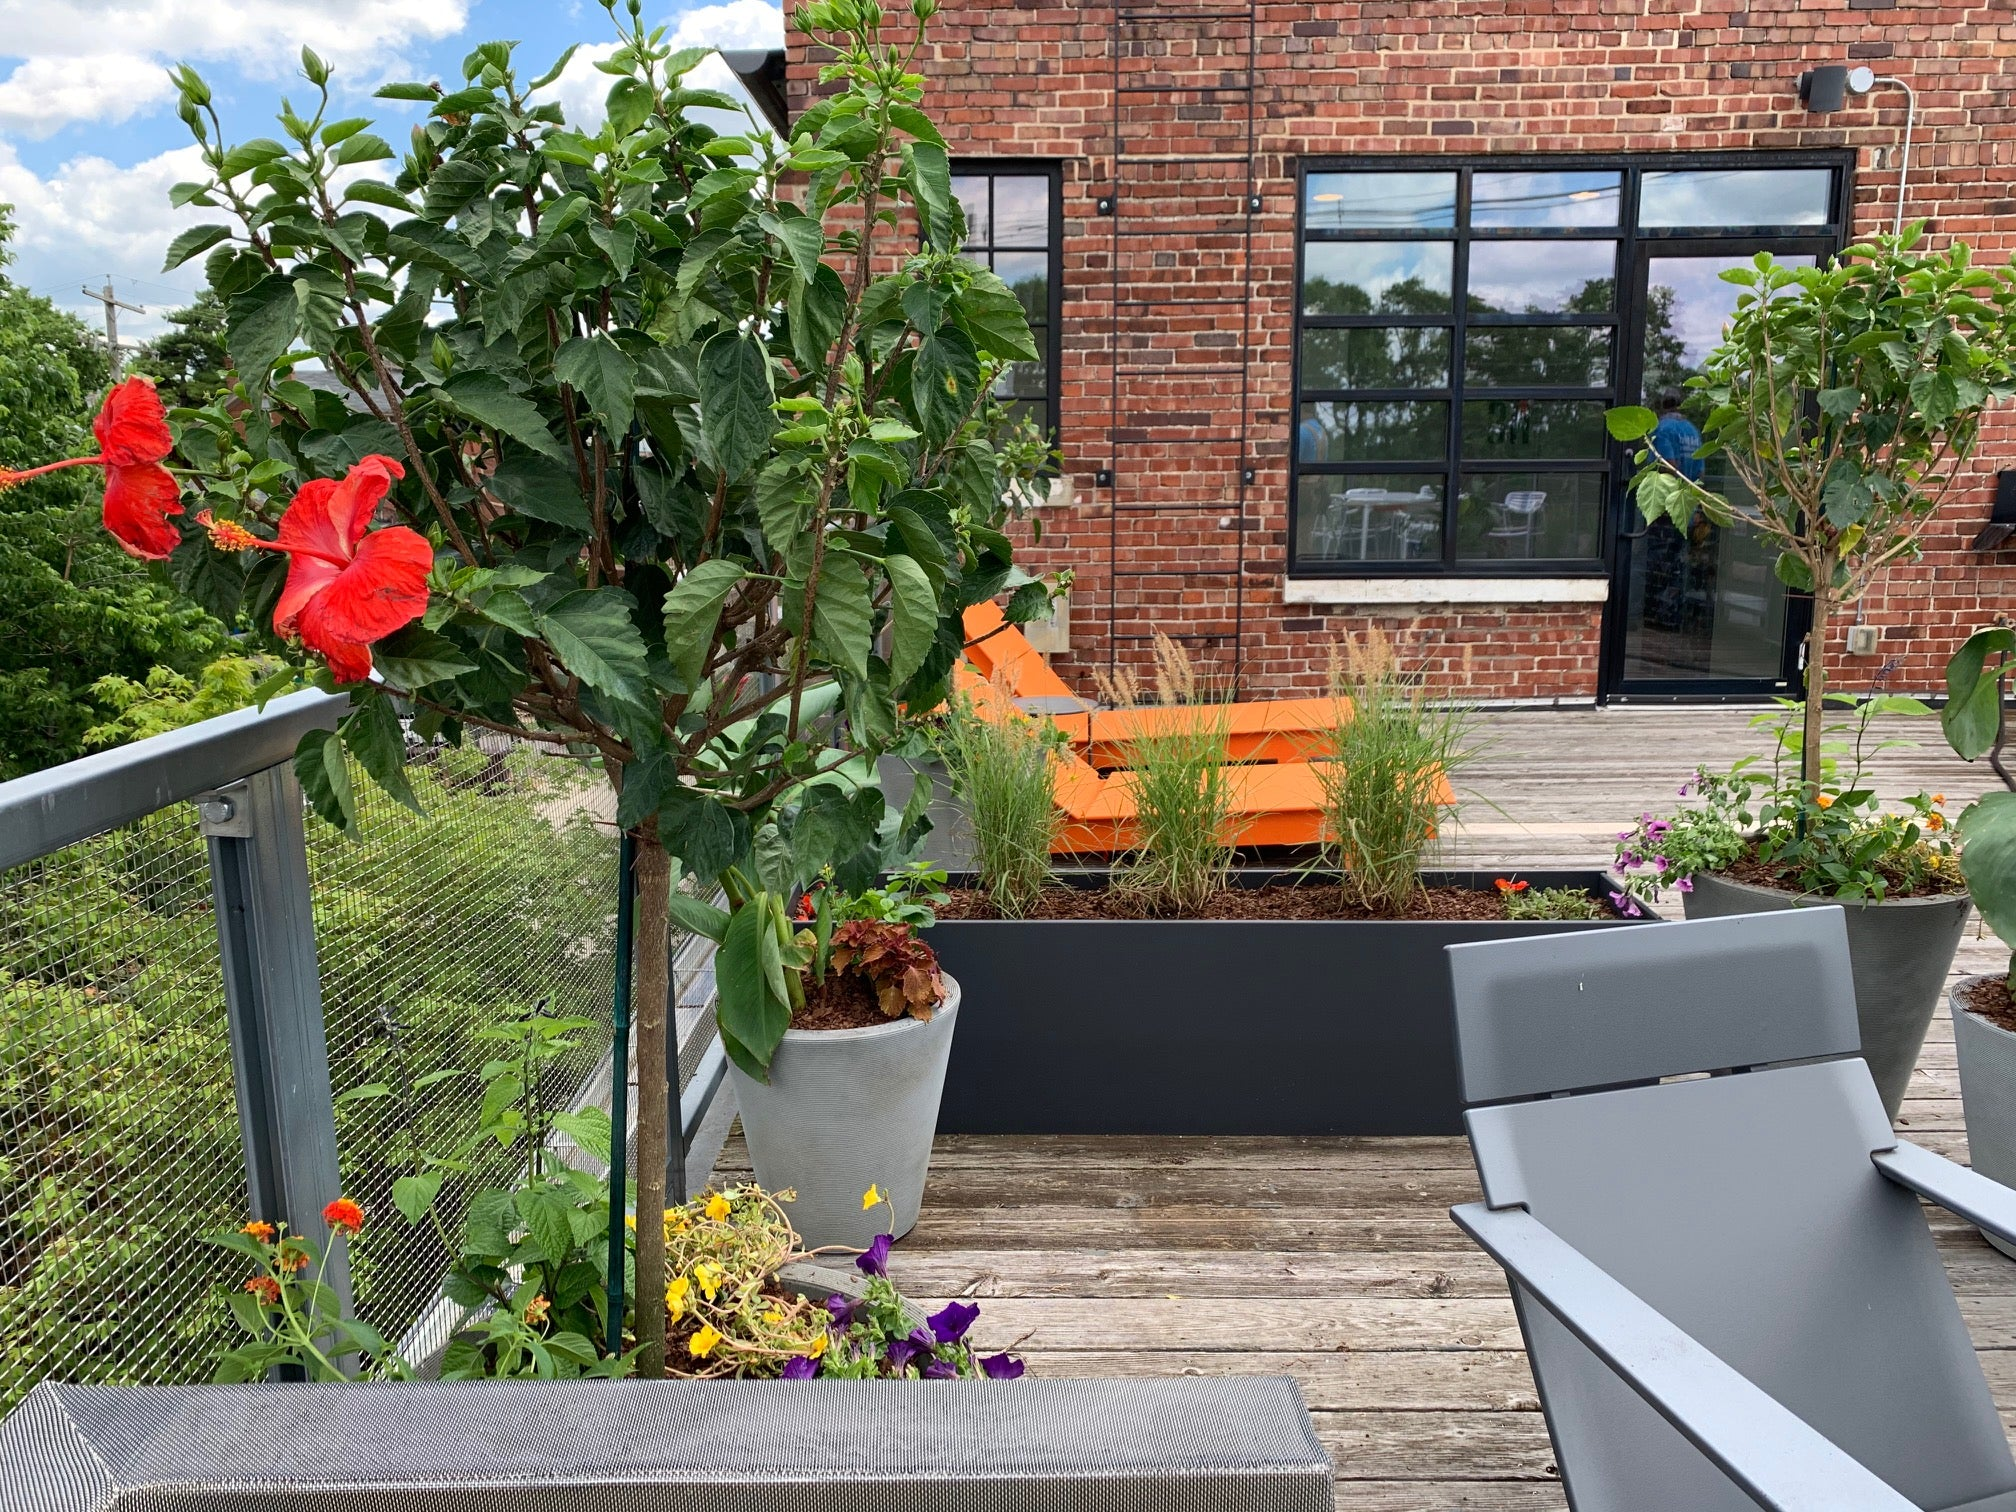 Tropical plants and annual flowers in containers on a rooftop patio